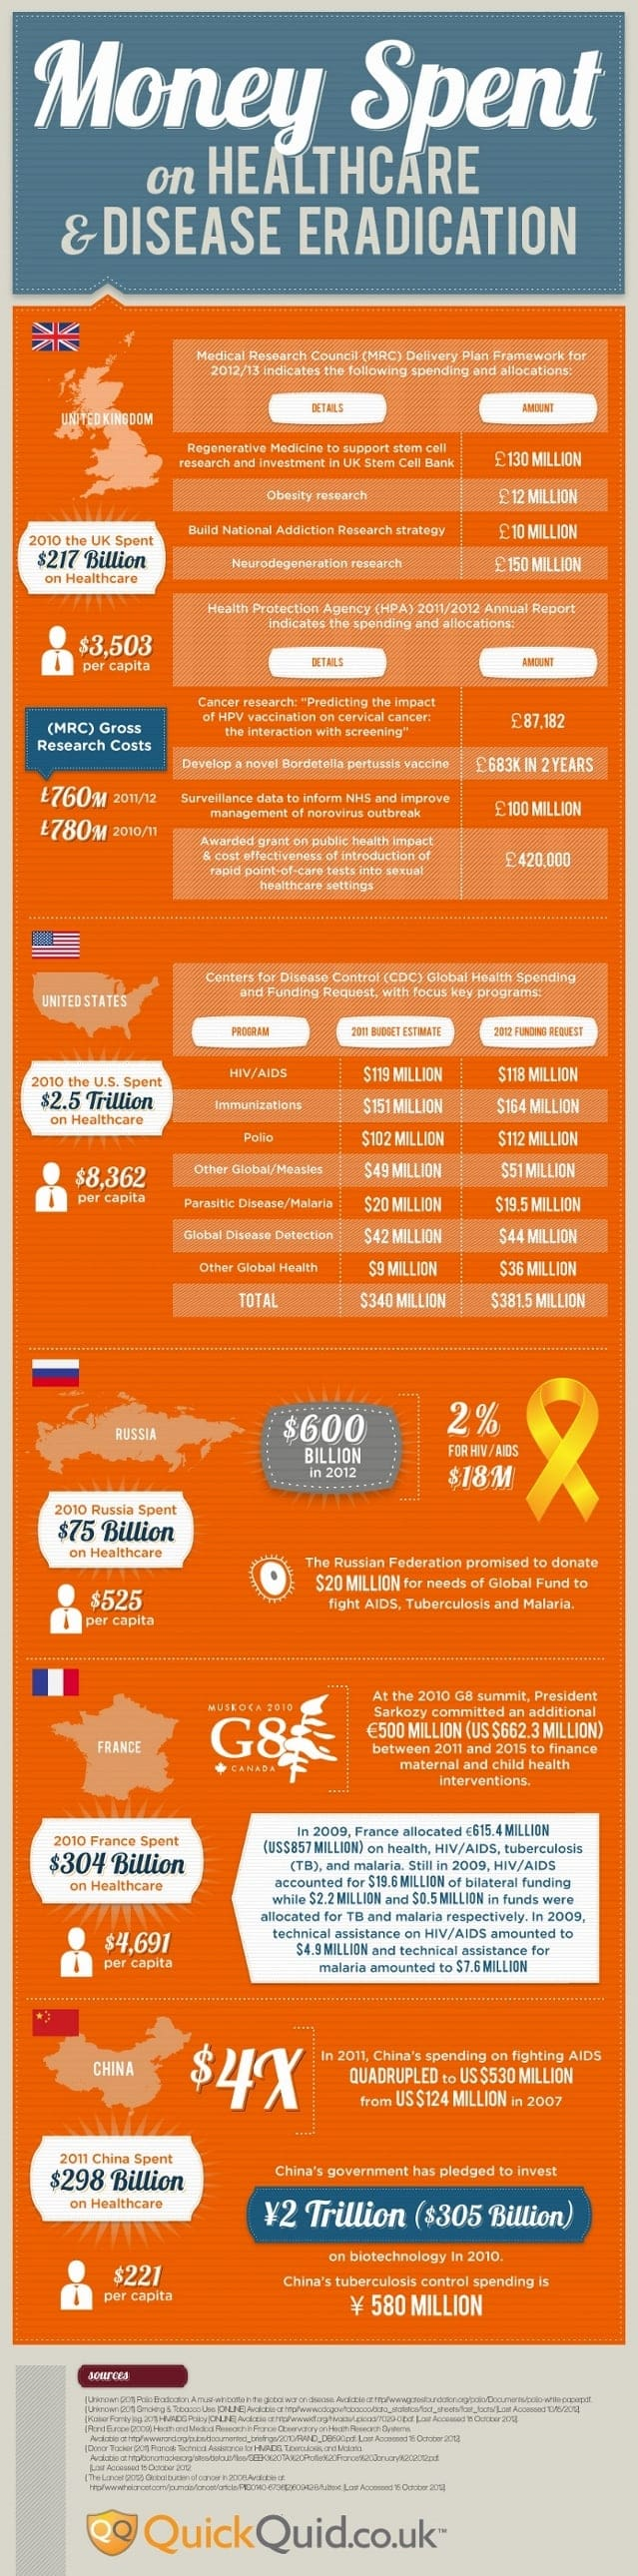 Money Spent on Healthcare and Disease Eradication [Infographic]